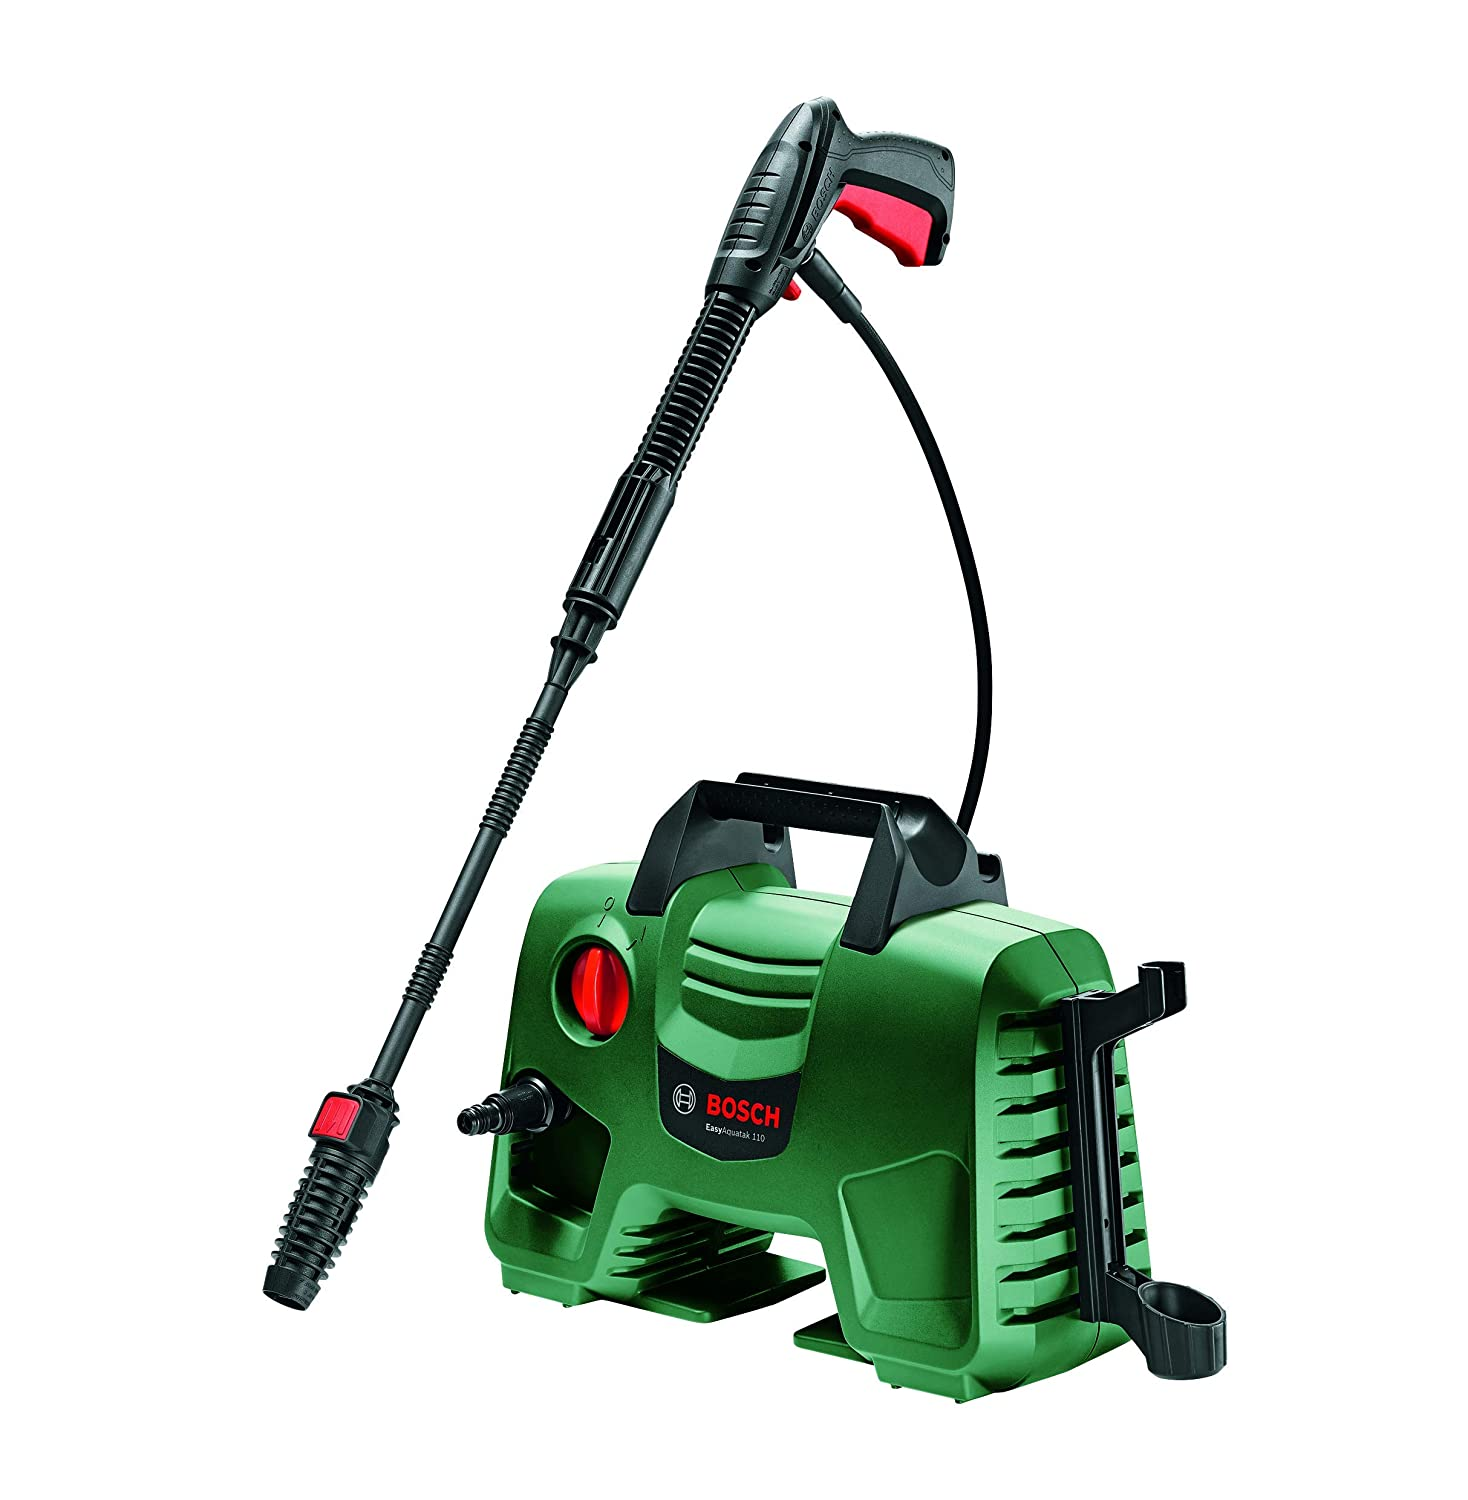 Bosch Easy Aquatak 110 1300-Watt High Pressure Washer (Green ...